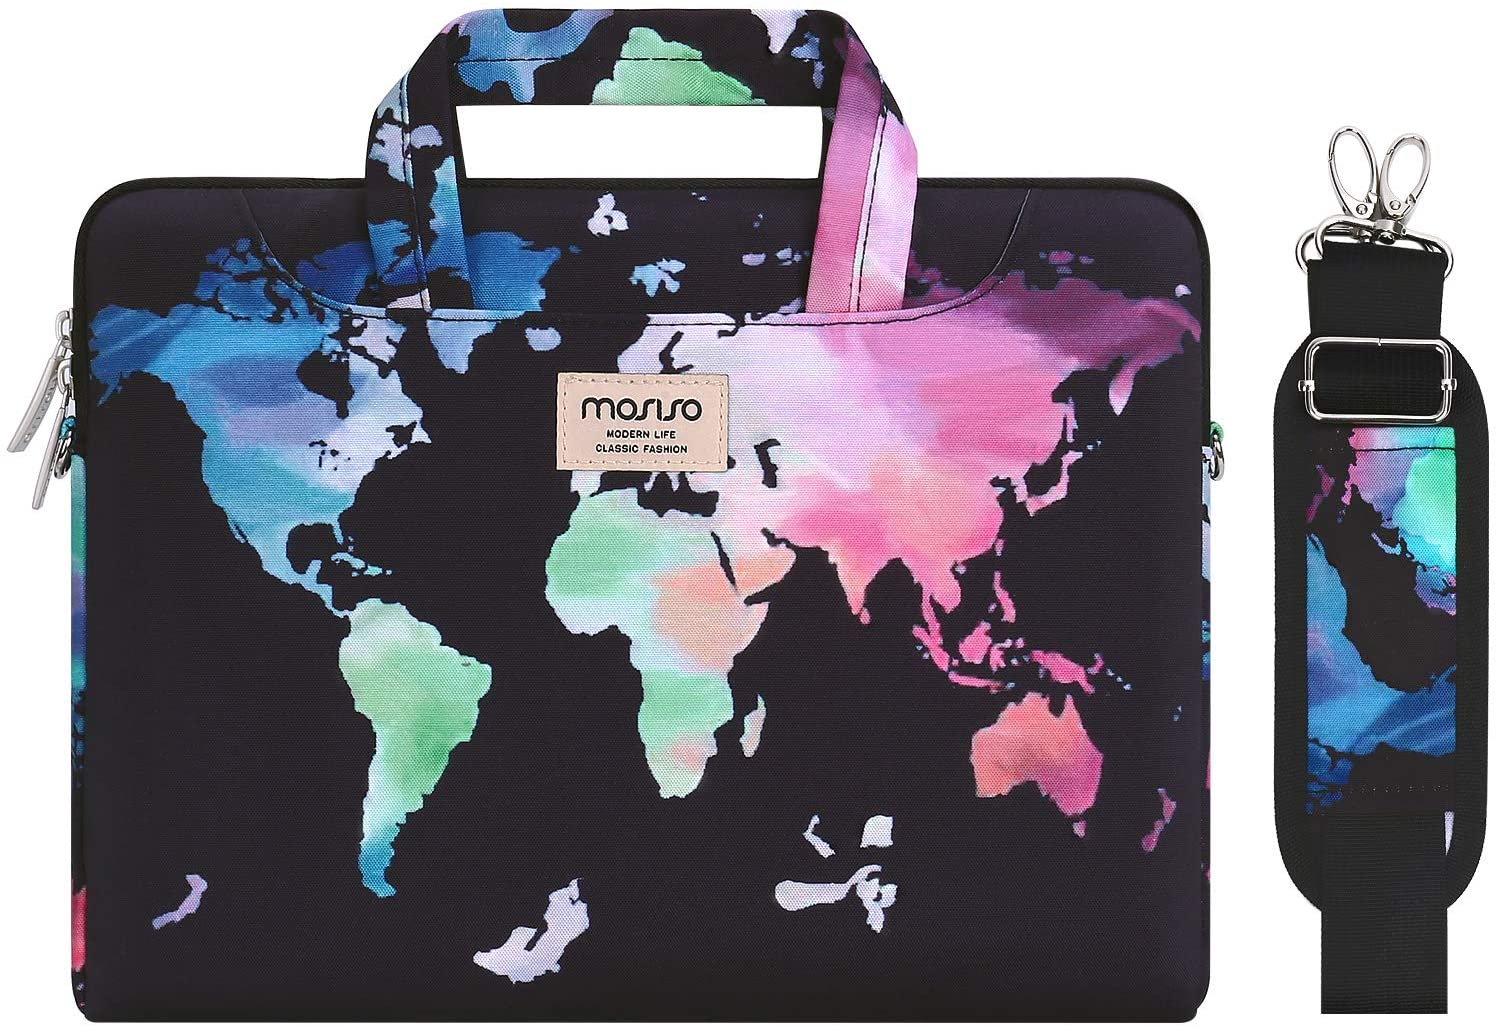 MOSISO Laptop Shoulder Bag Compatible with 2019 MacBook Pro 16 inch, 15 15.4 15.6 inch Dell Lenovo HP Asus Acer Samsung Sony Chromebook, World Map Carrying Briefcase Sleeve with Trolley Belt